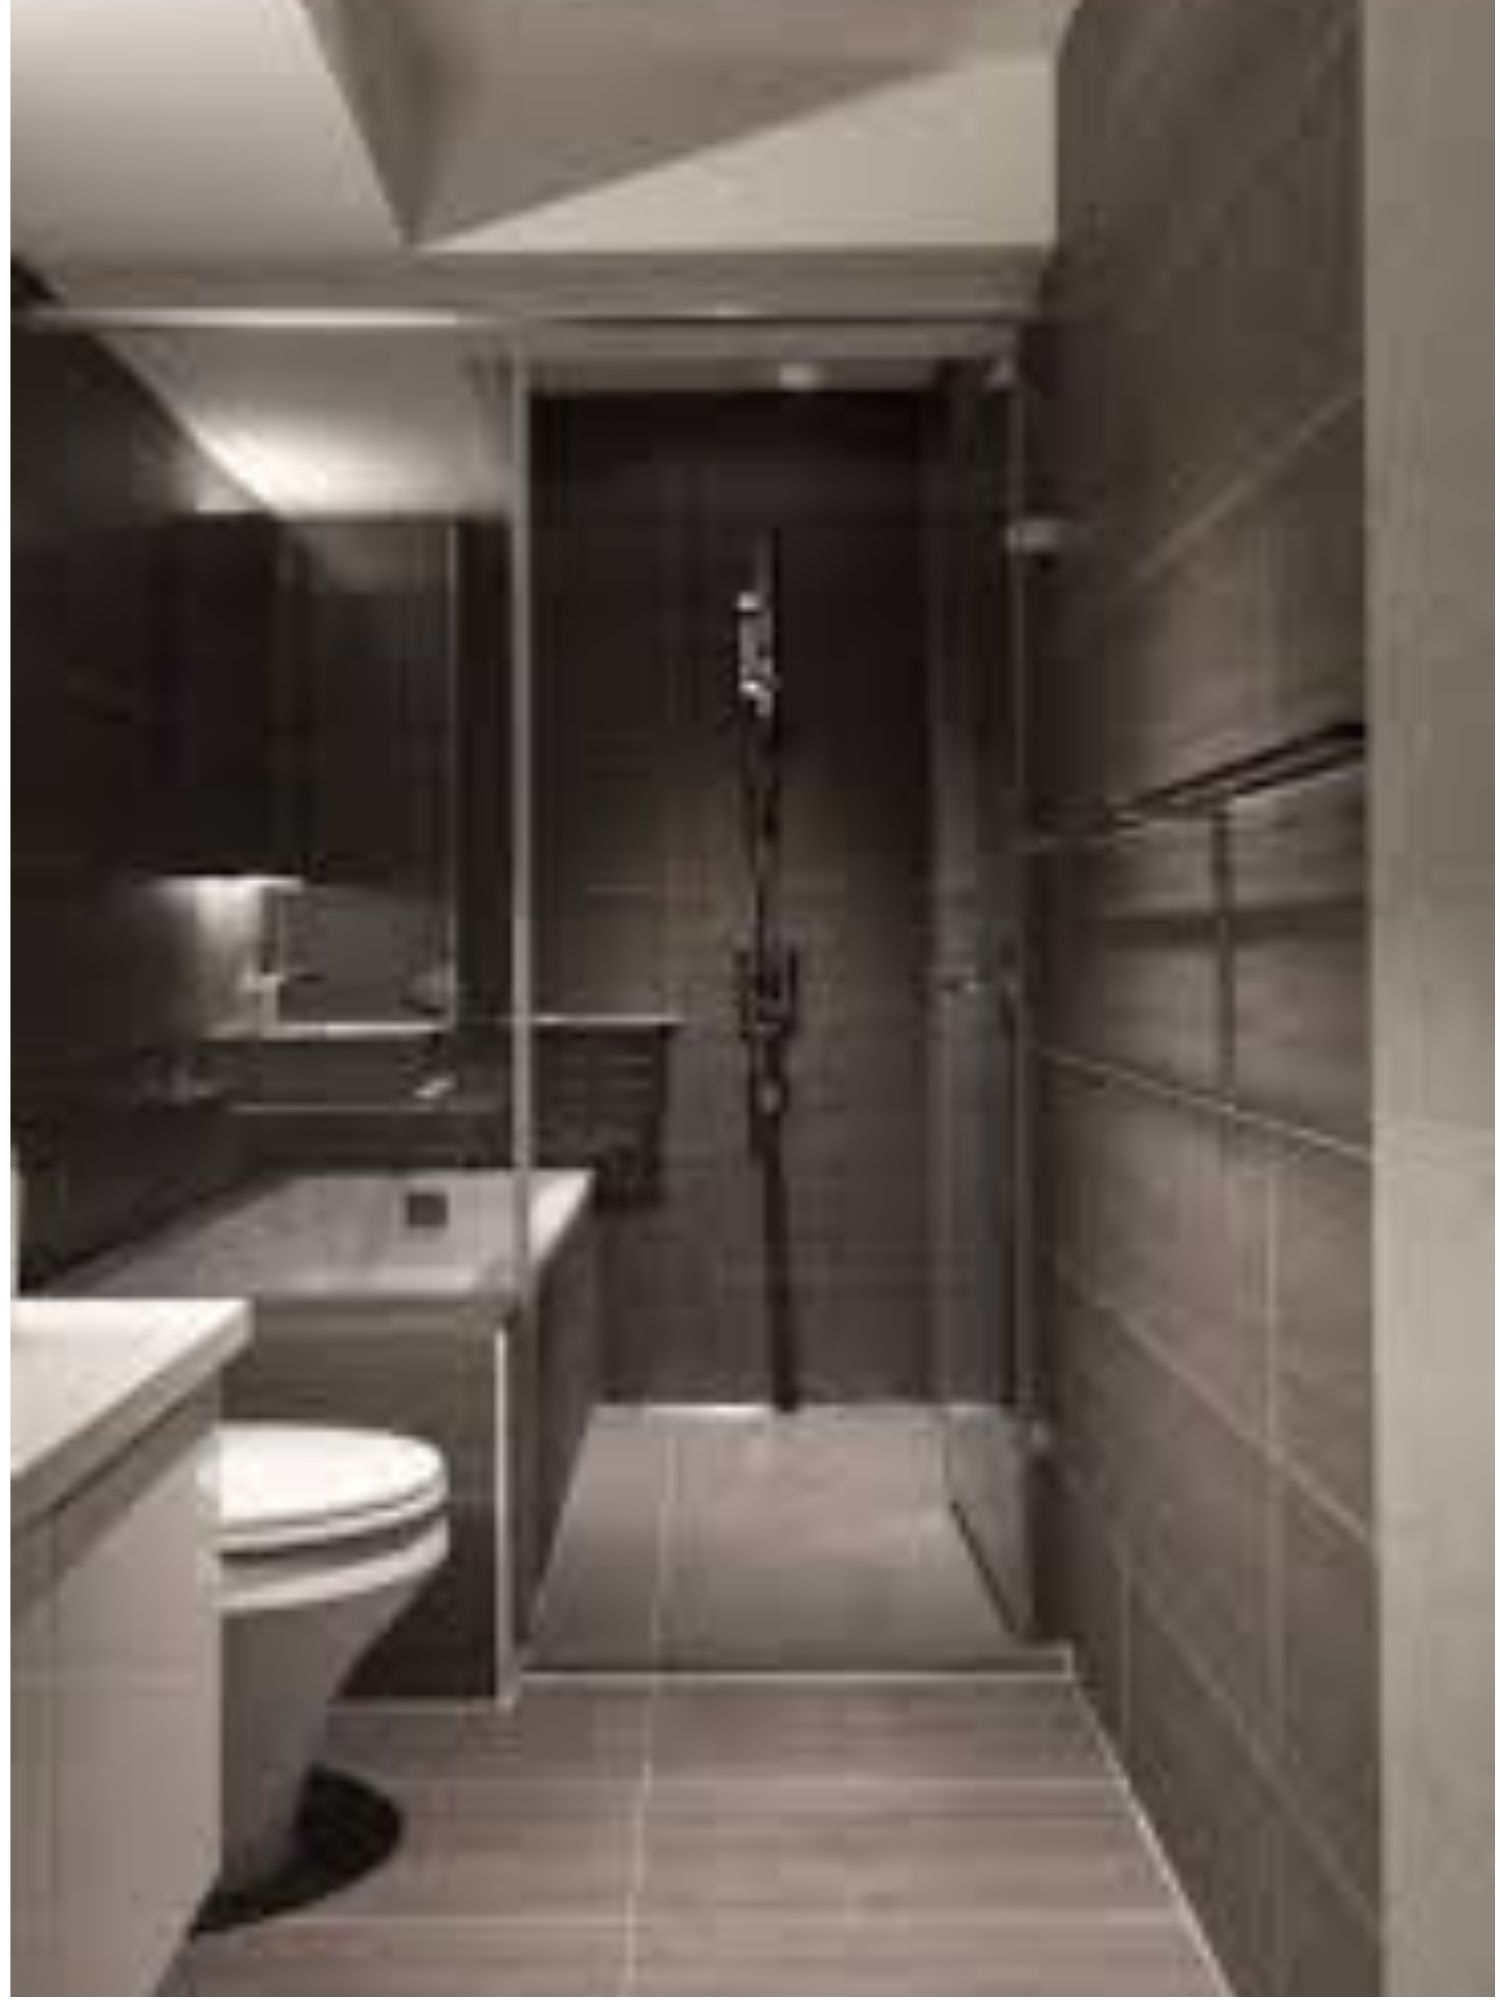 51 Modern Bathroom Design Ideas Plus Tips On How To Accessorize Yours Small Bathroom Makeover Gorgeous Bathroom Designs Bathroom Interior Design